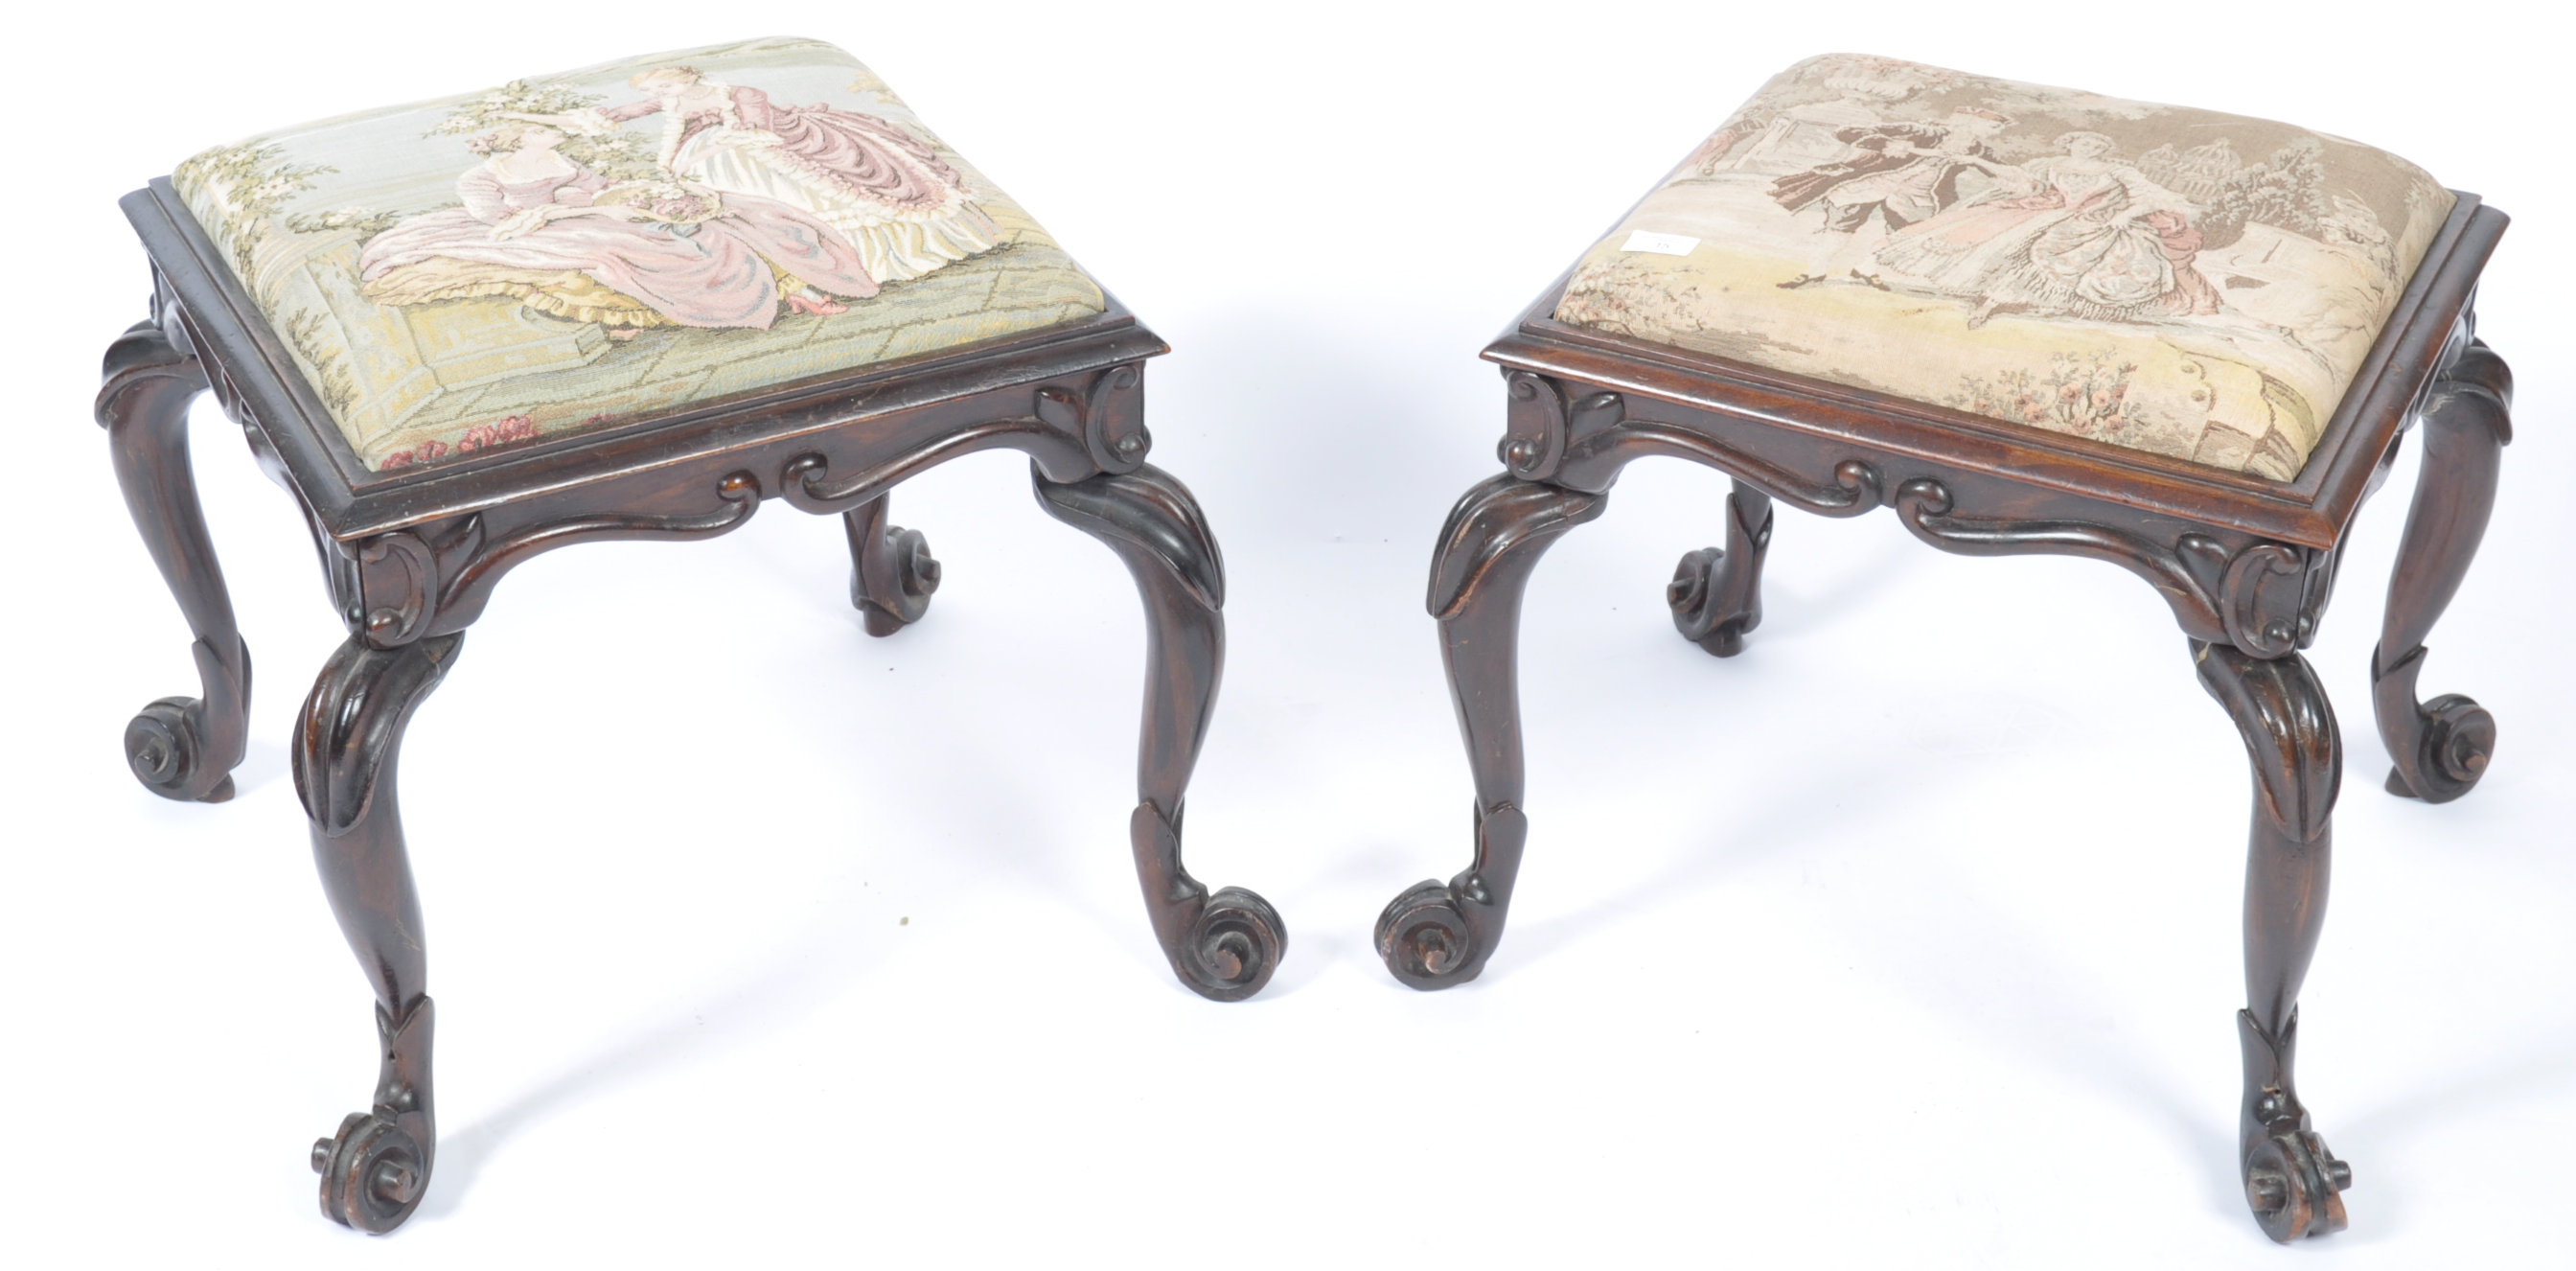 Lot 15 - PAIR OF MID 19TH CENTURY SIMULATED ROSEWOOD FOOT STOOLS